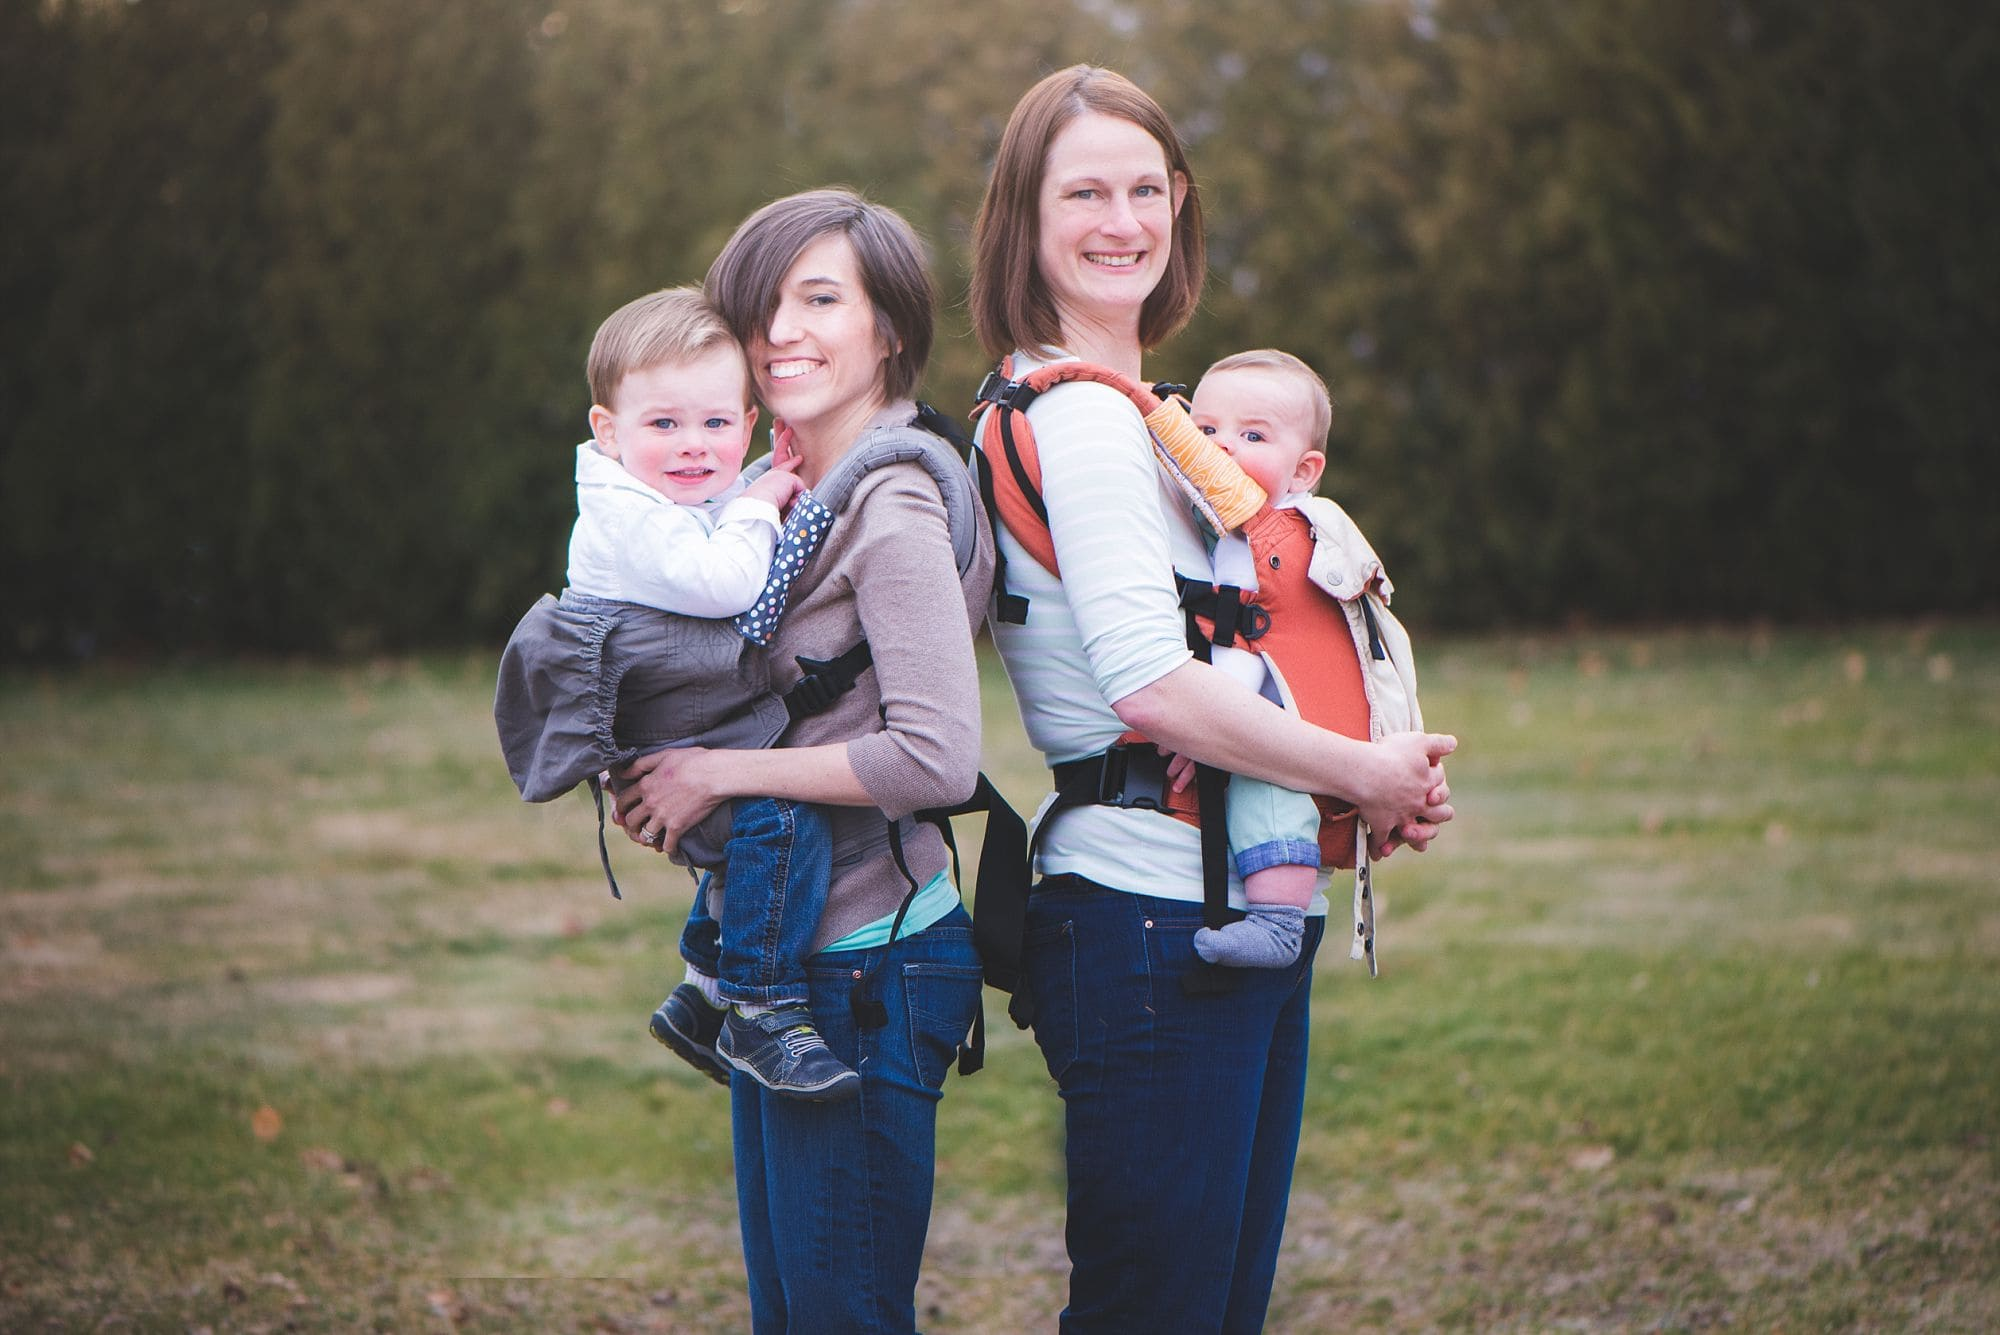 Two moms babywearing their toddler and baby in soft structured carriers